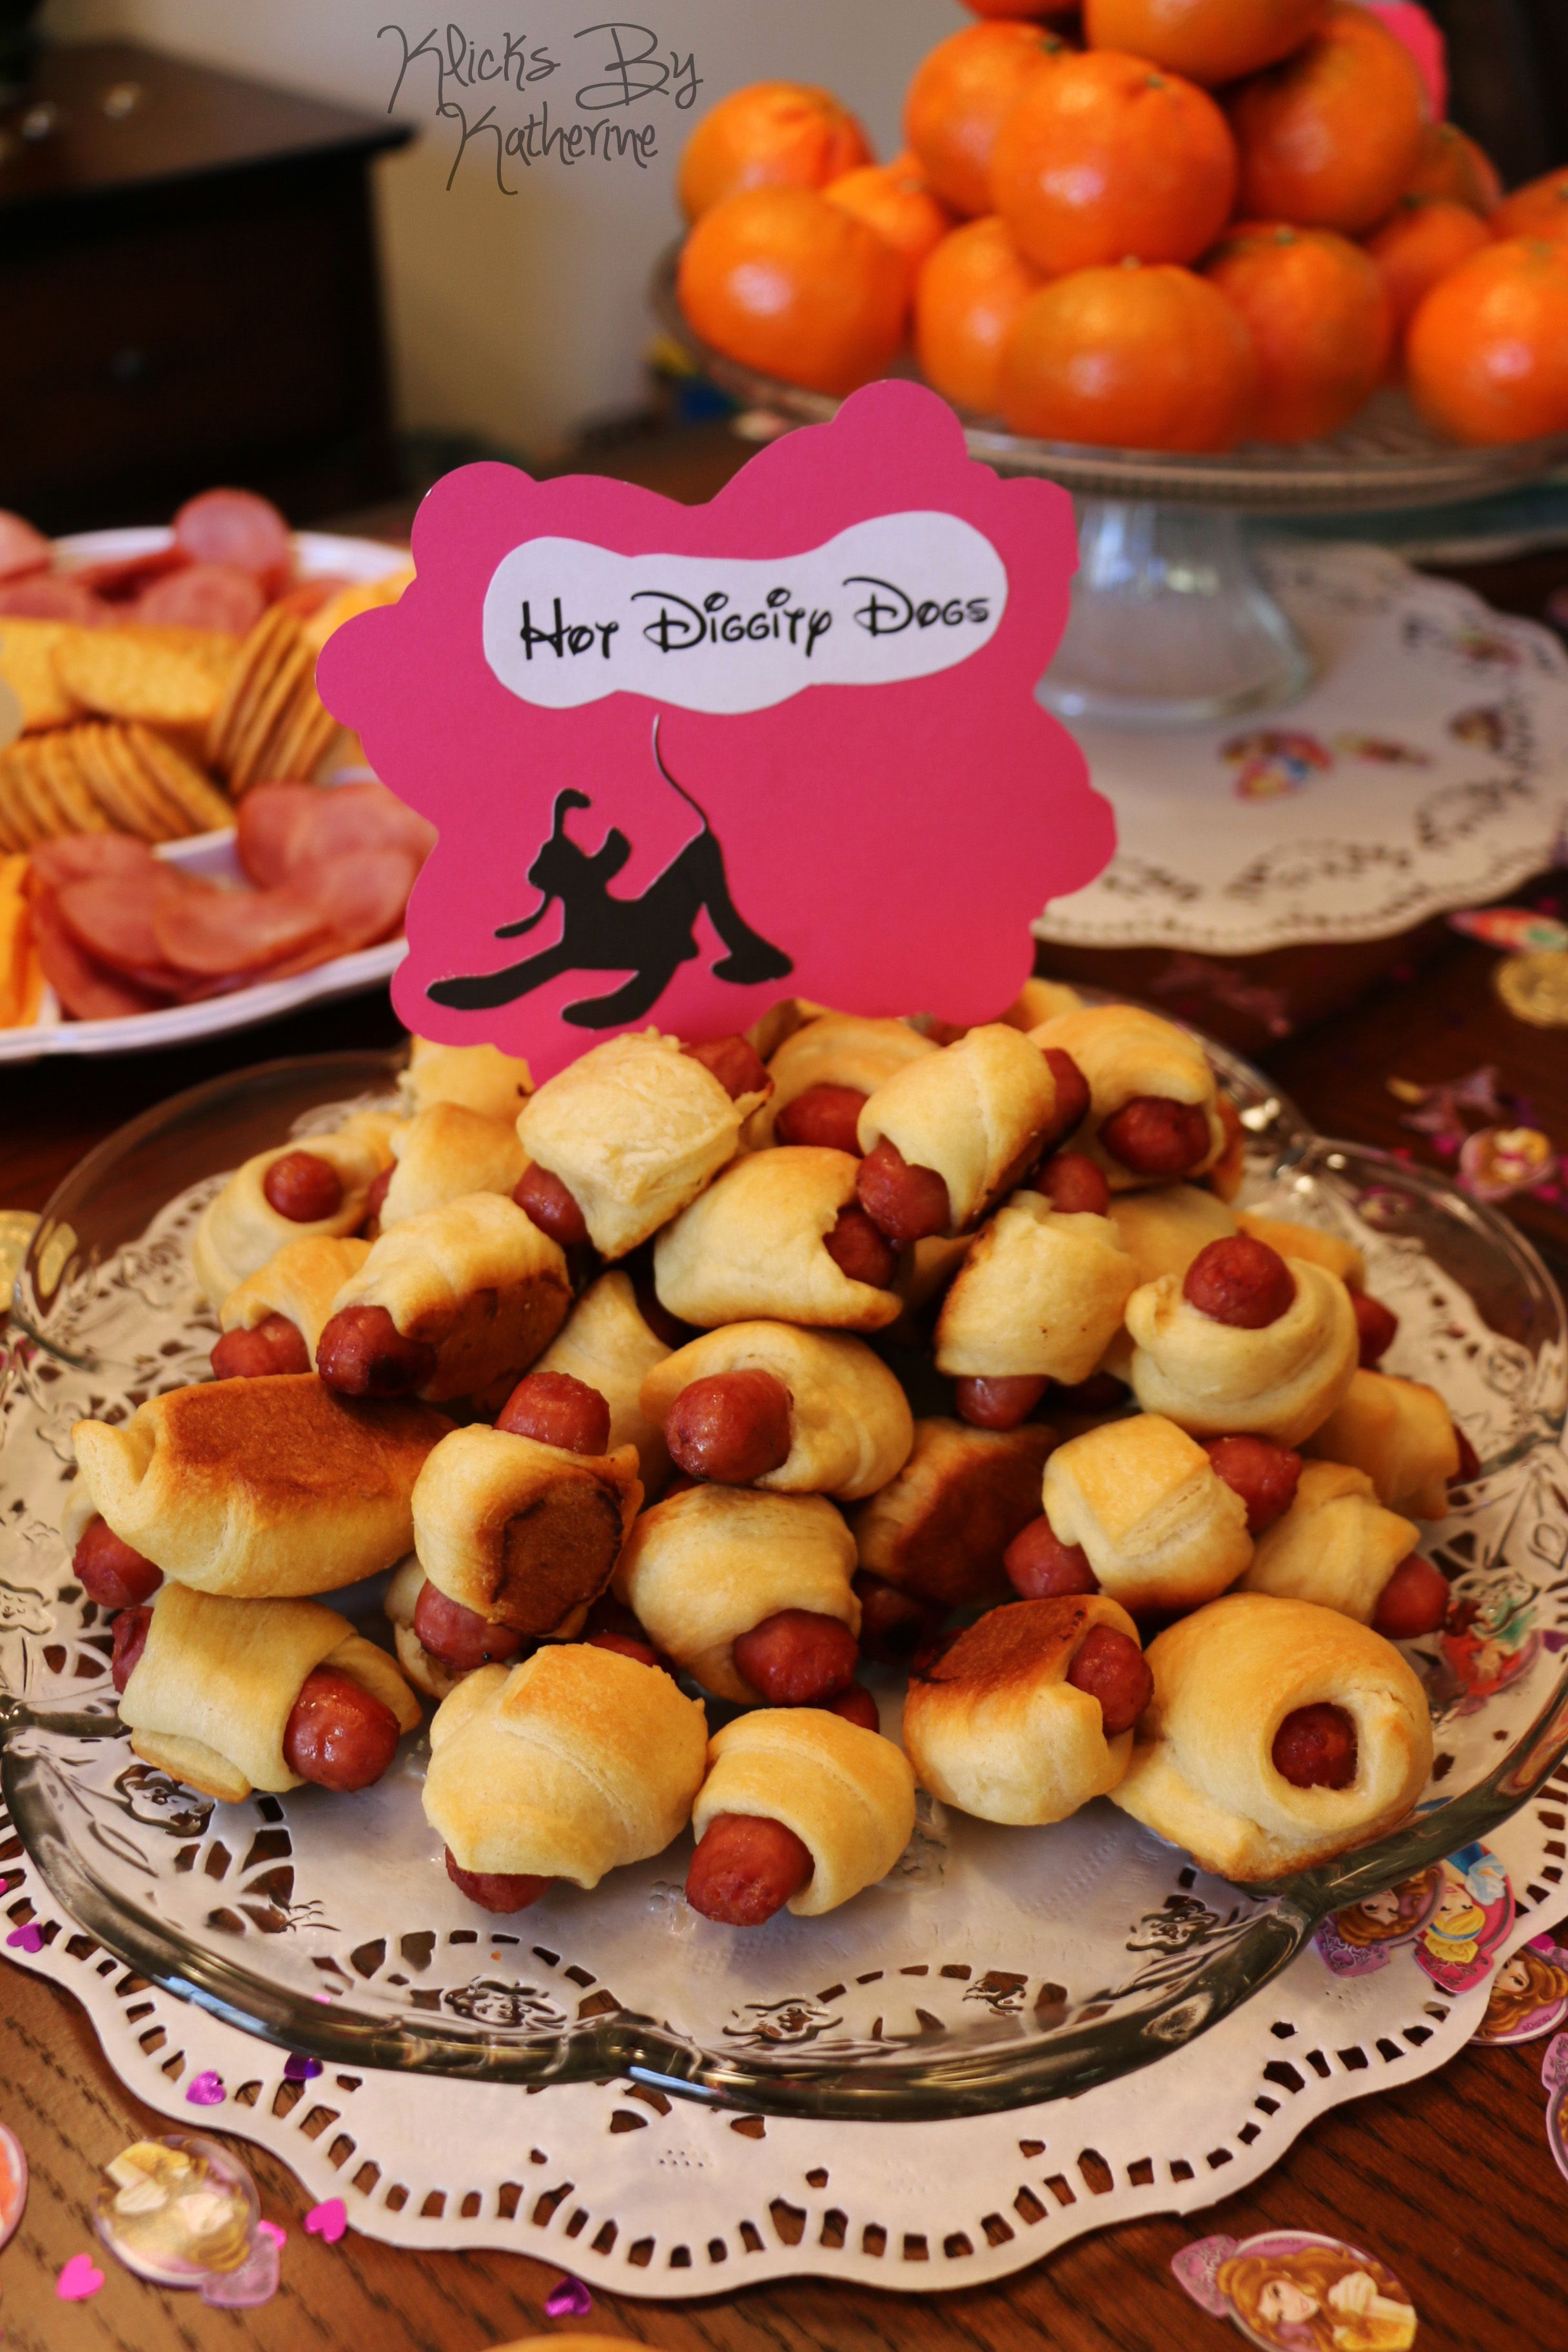 Disney Birthday Party ideas DIY Hot Diggity Dogs Pigs in a